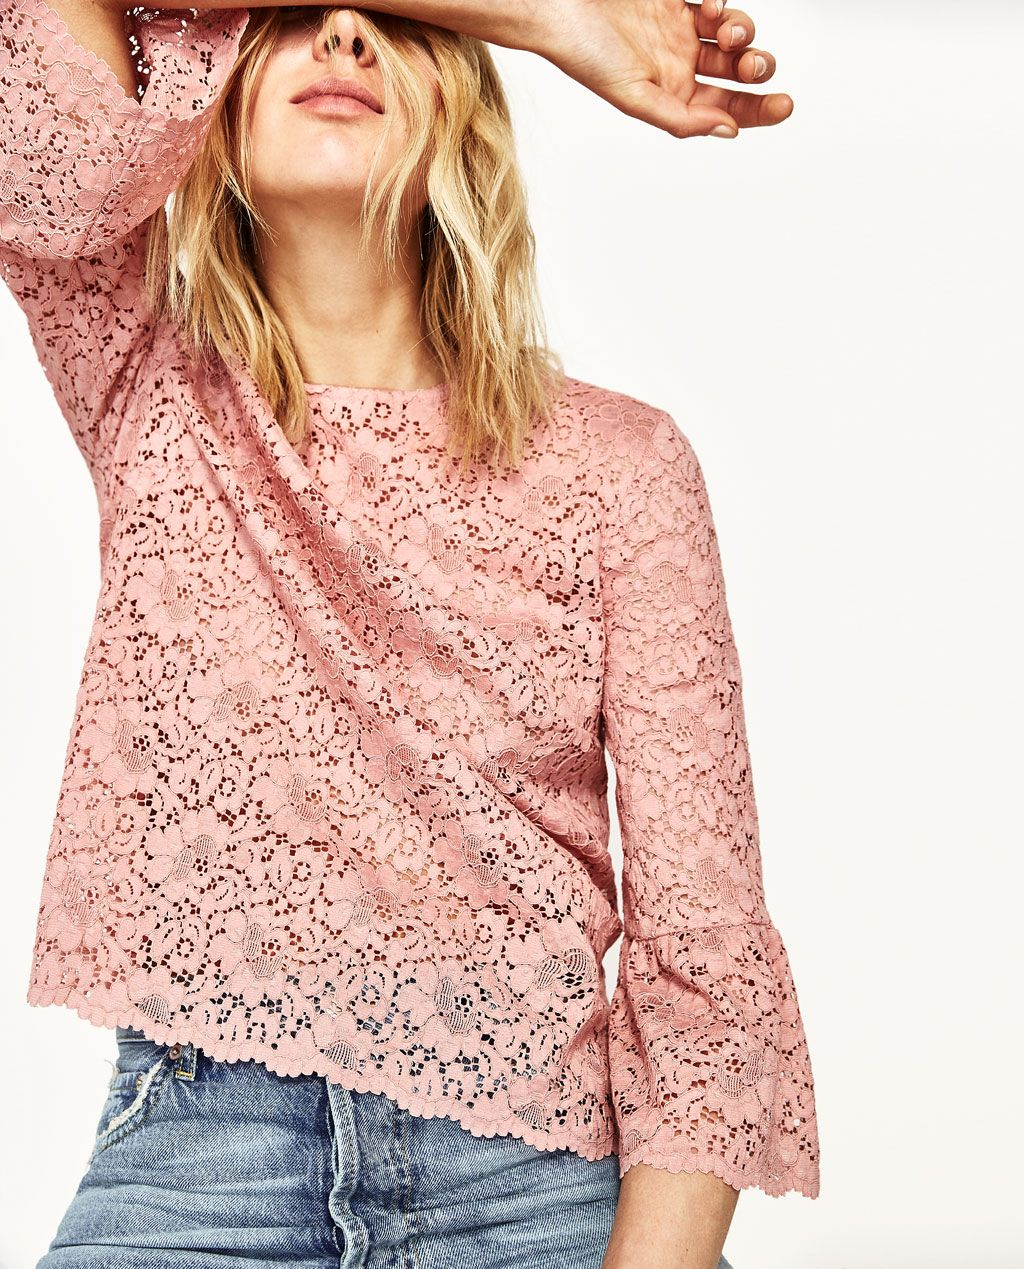 LACE TOP WITH FRILLED SLEEVES   blusas   Pinterest   Volantes, Zara ...